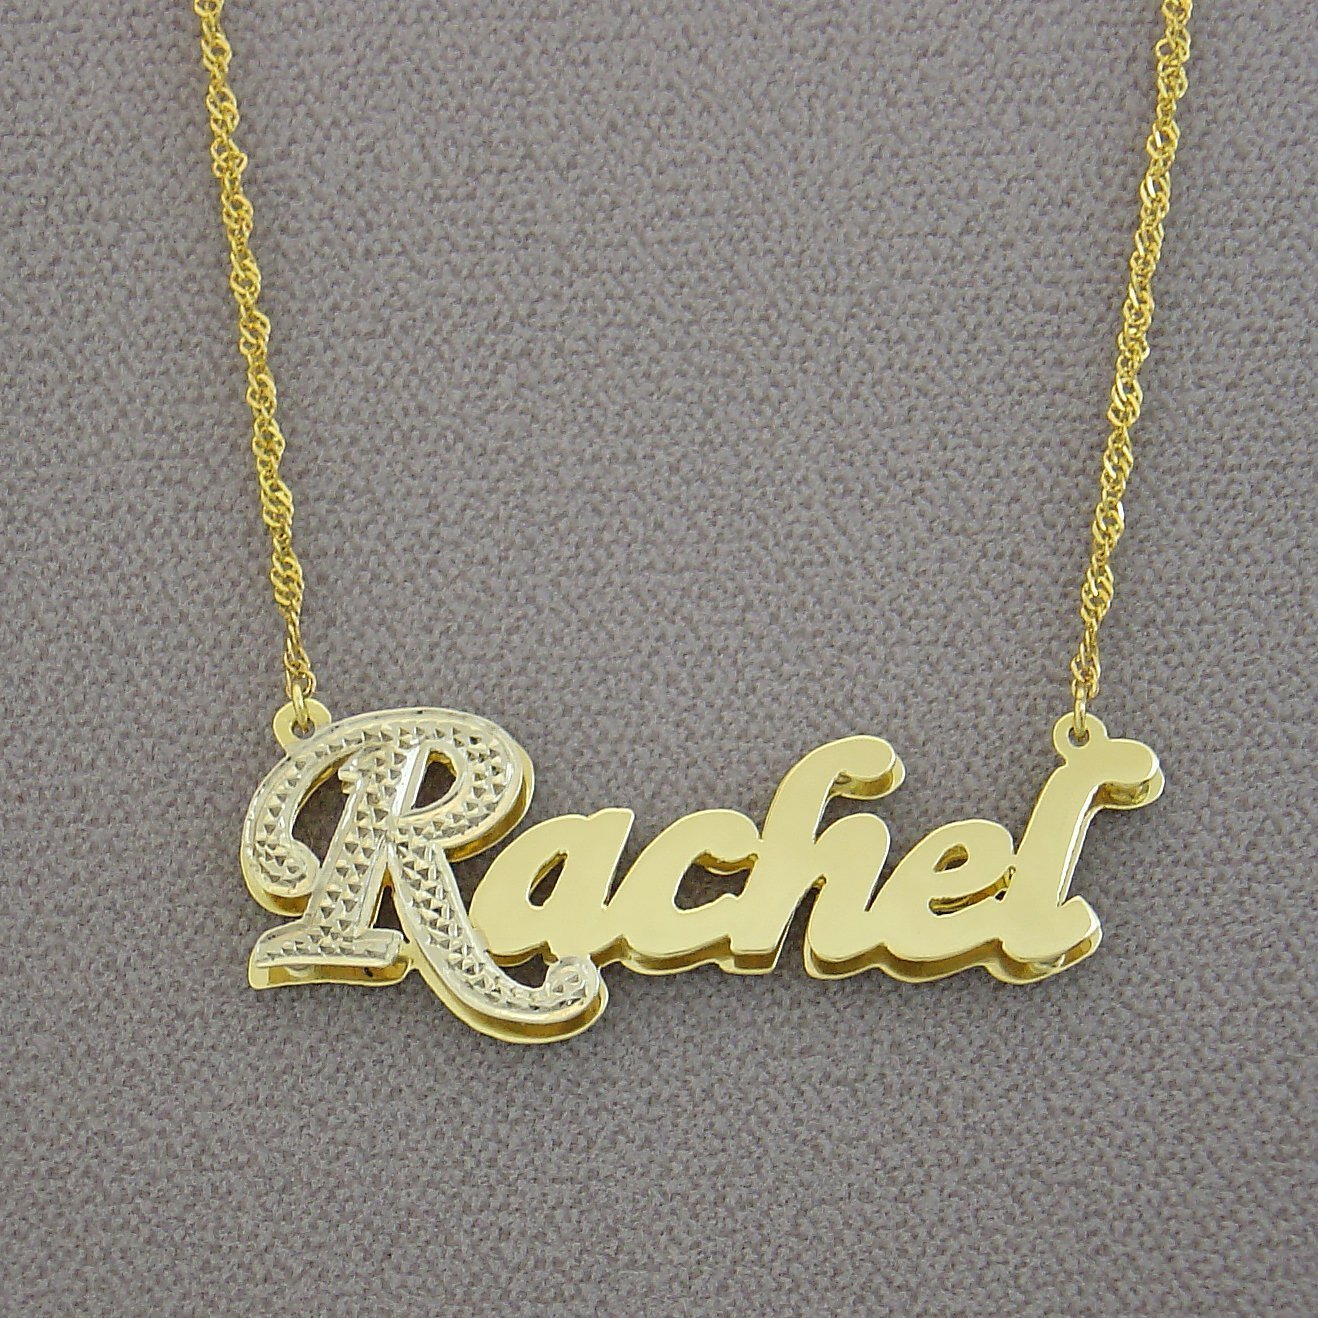 7b21cd60a1d2 Amazon.com  10K Yellow Gold Double Plates Small 3D Name Pendant Charm  Personalized Jewelry  Handmade